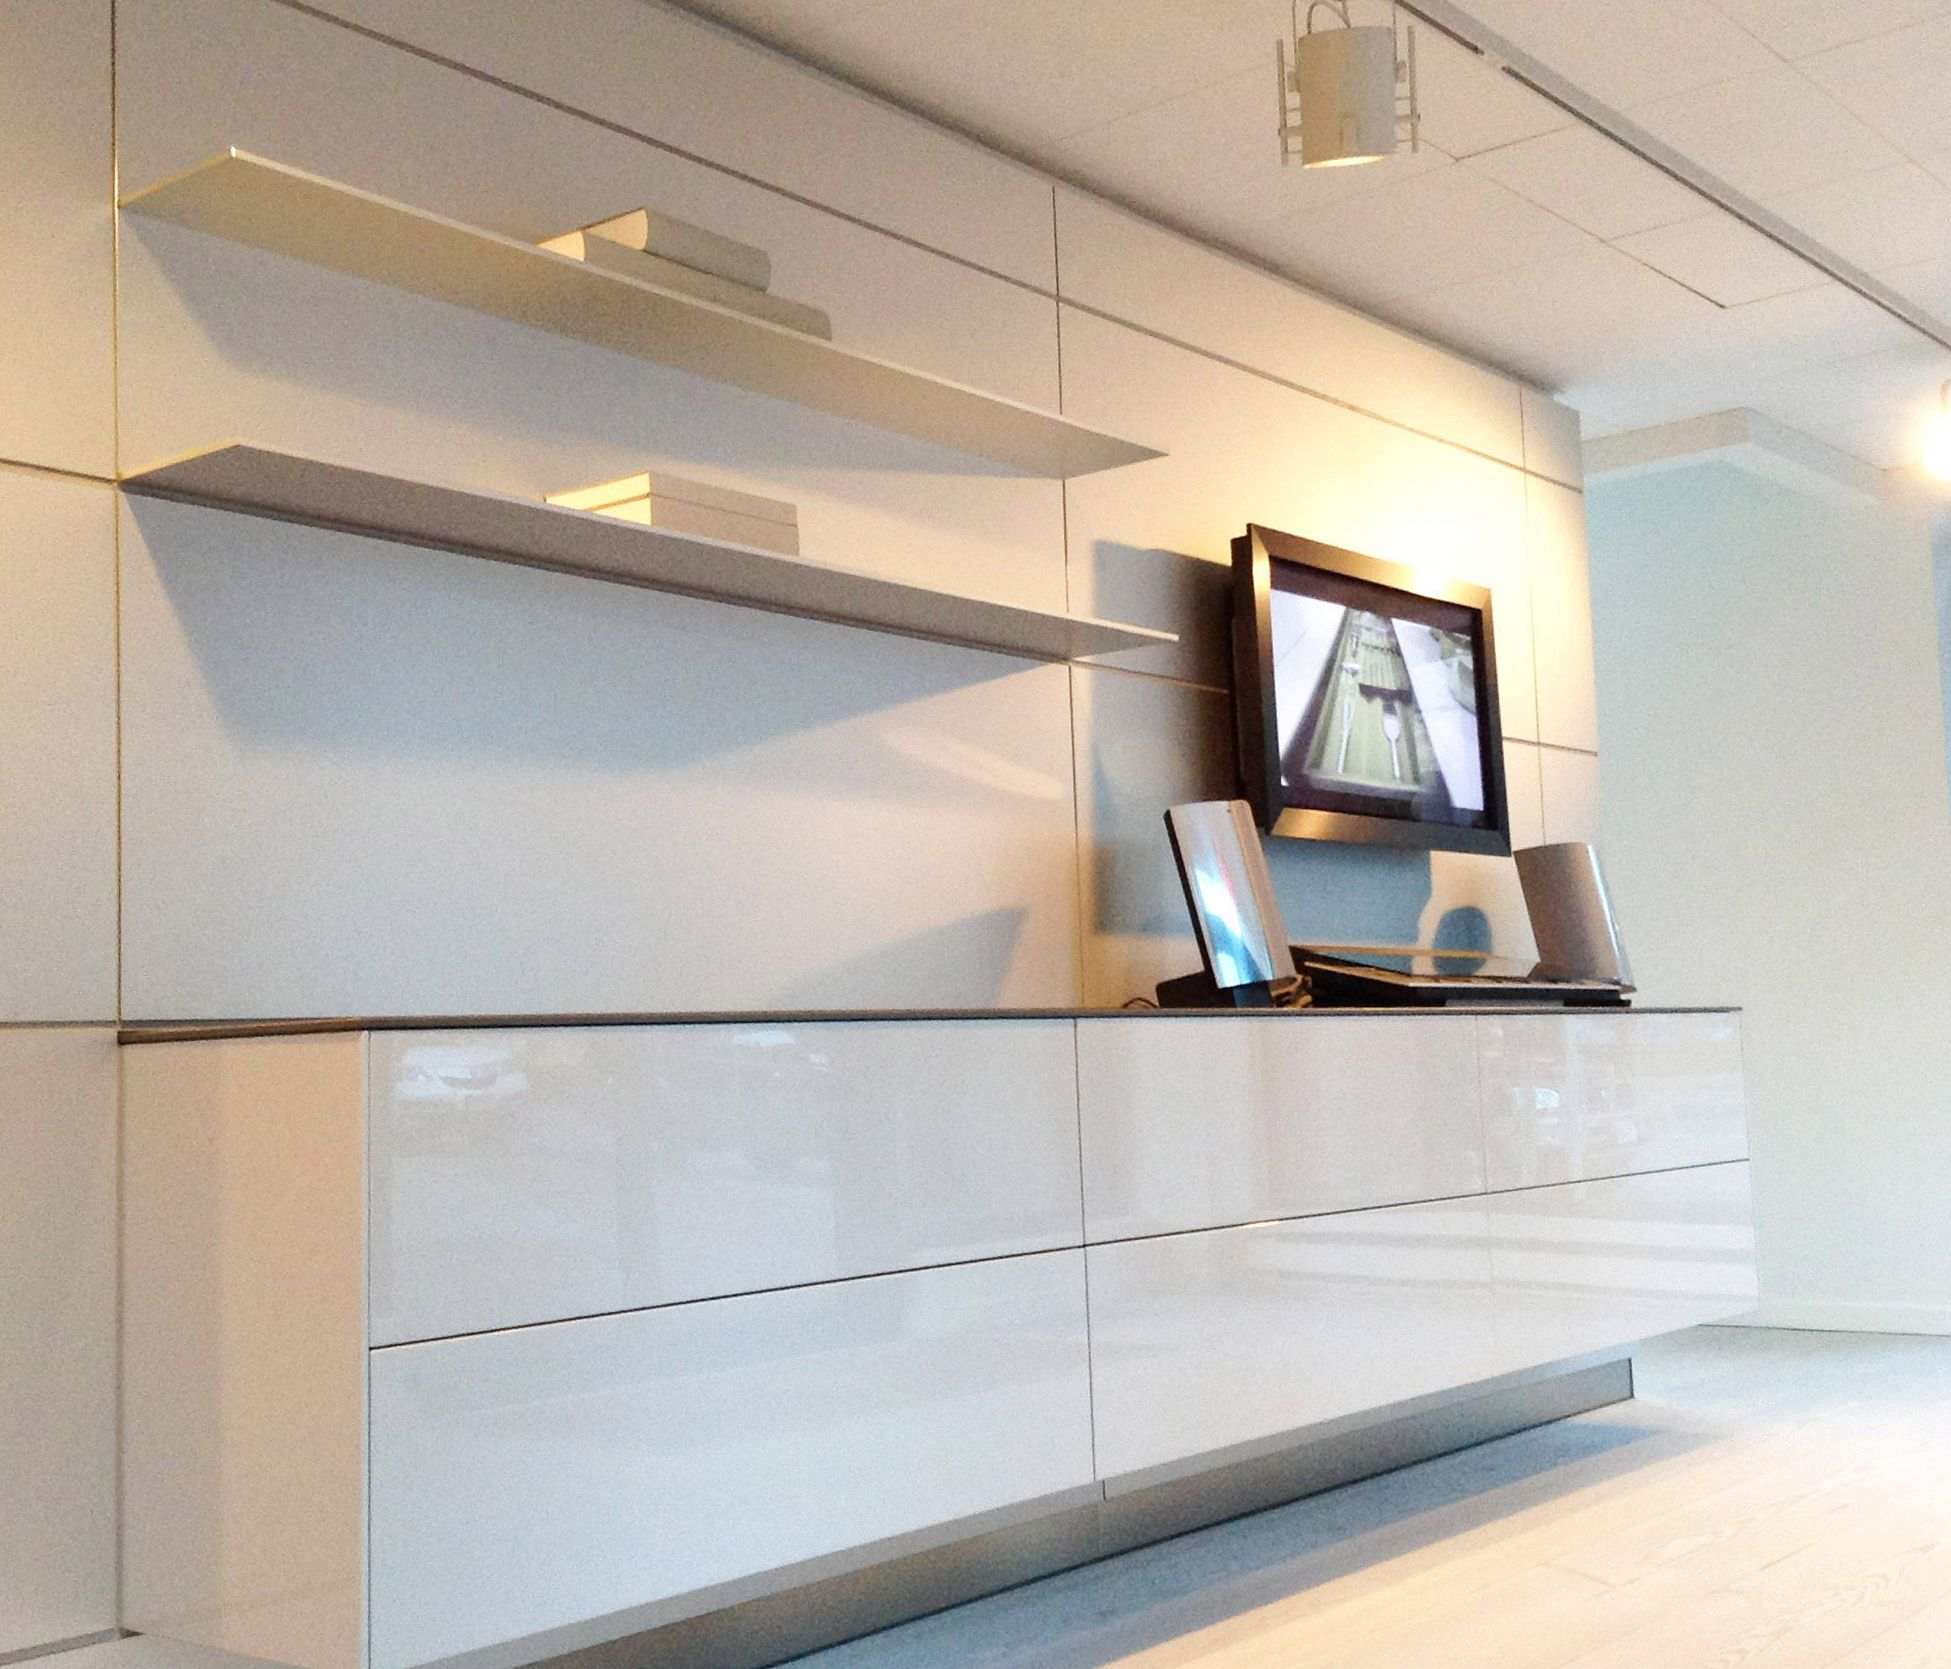 Kitchen Wall Shelving Units Islands With Seating And Storage B3 Hung Unit In High Gloss White Lacquer Finish